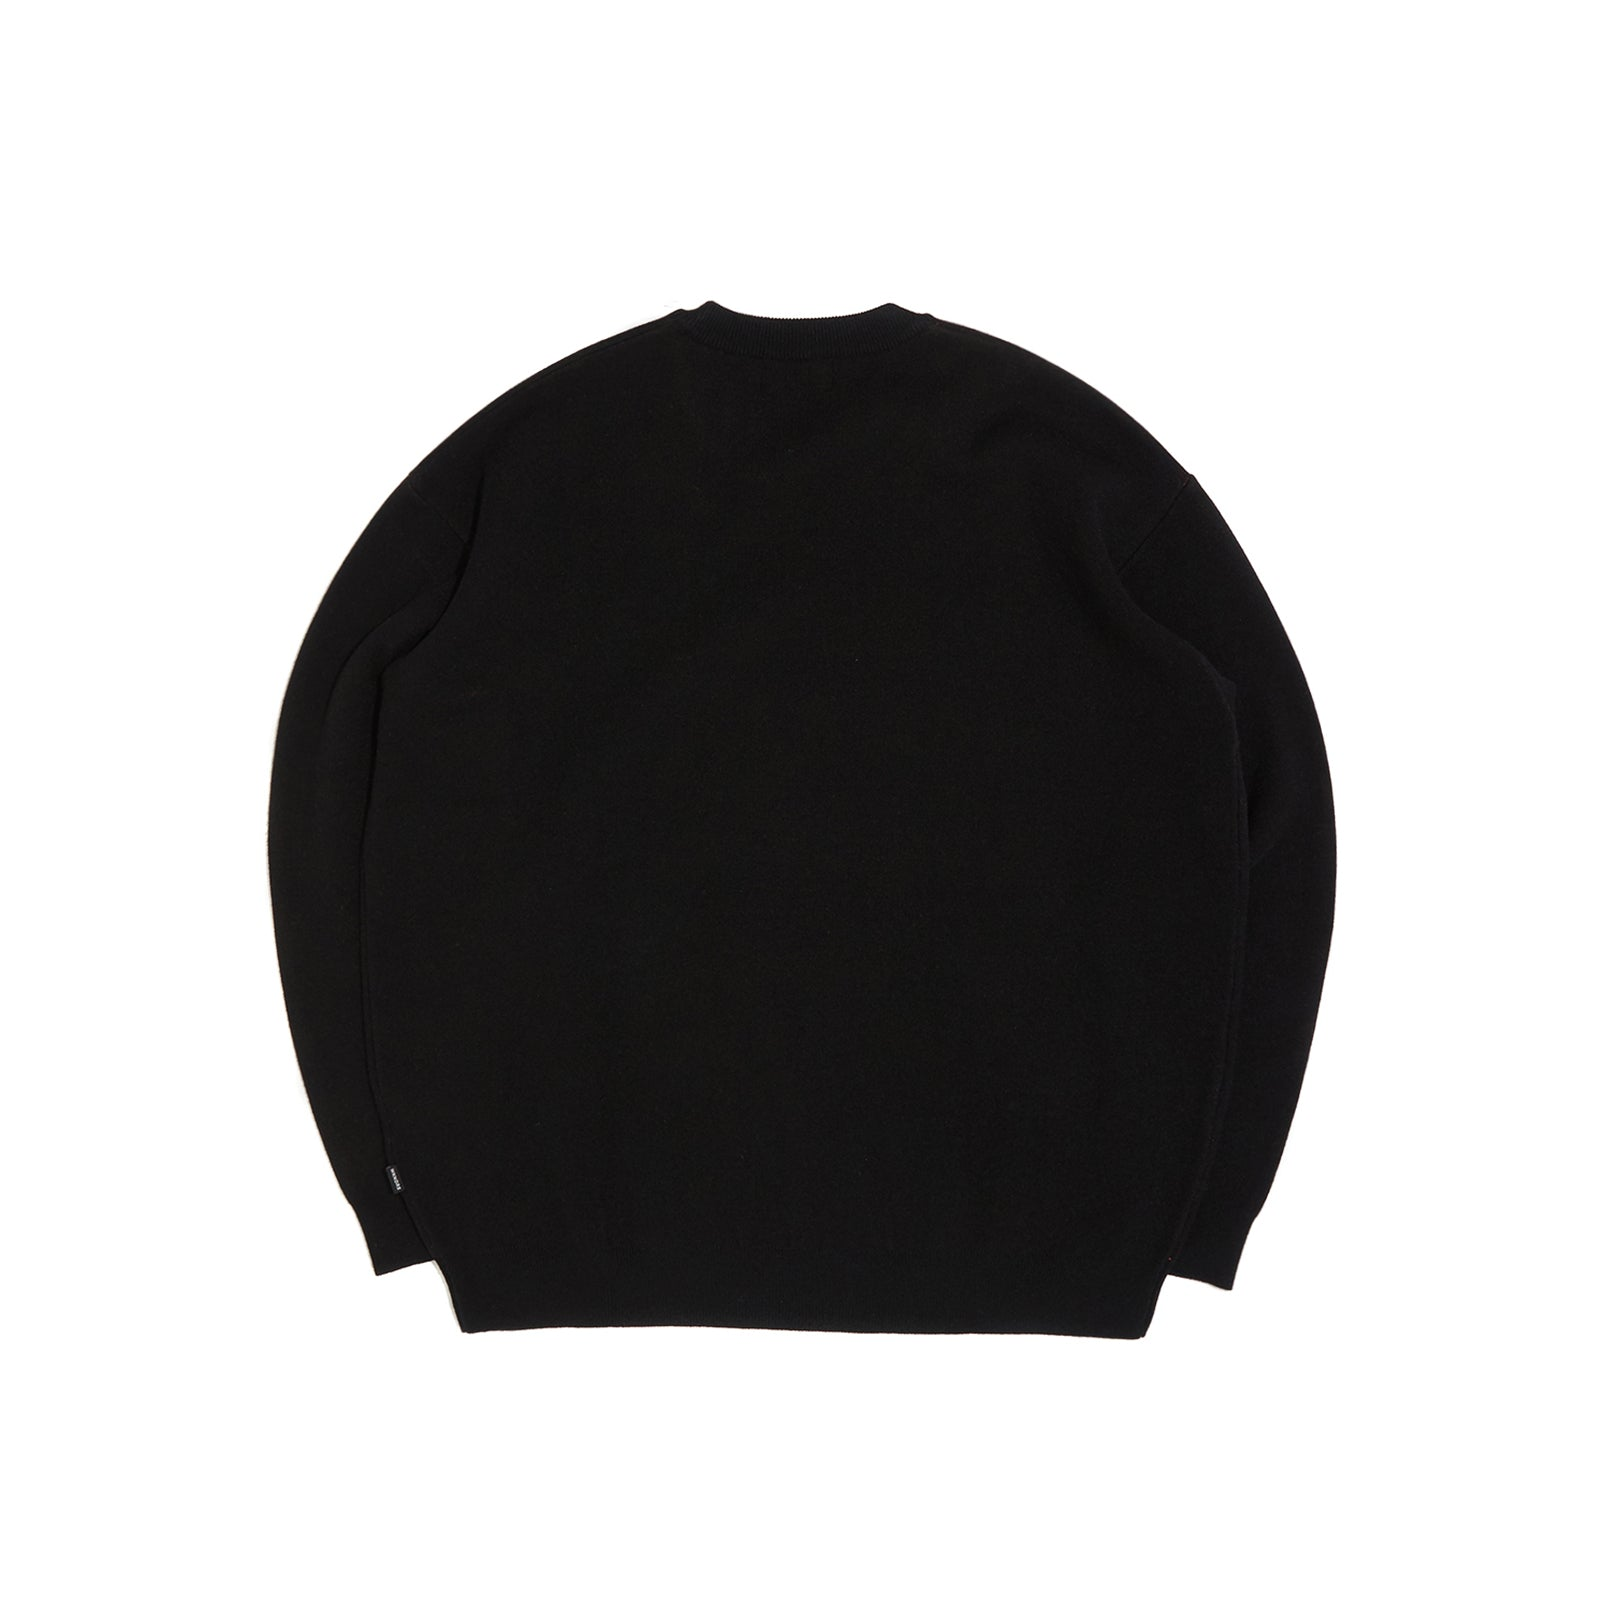 WAVY LOGO KNITTED CREWNECK (BLACK)